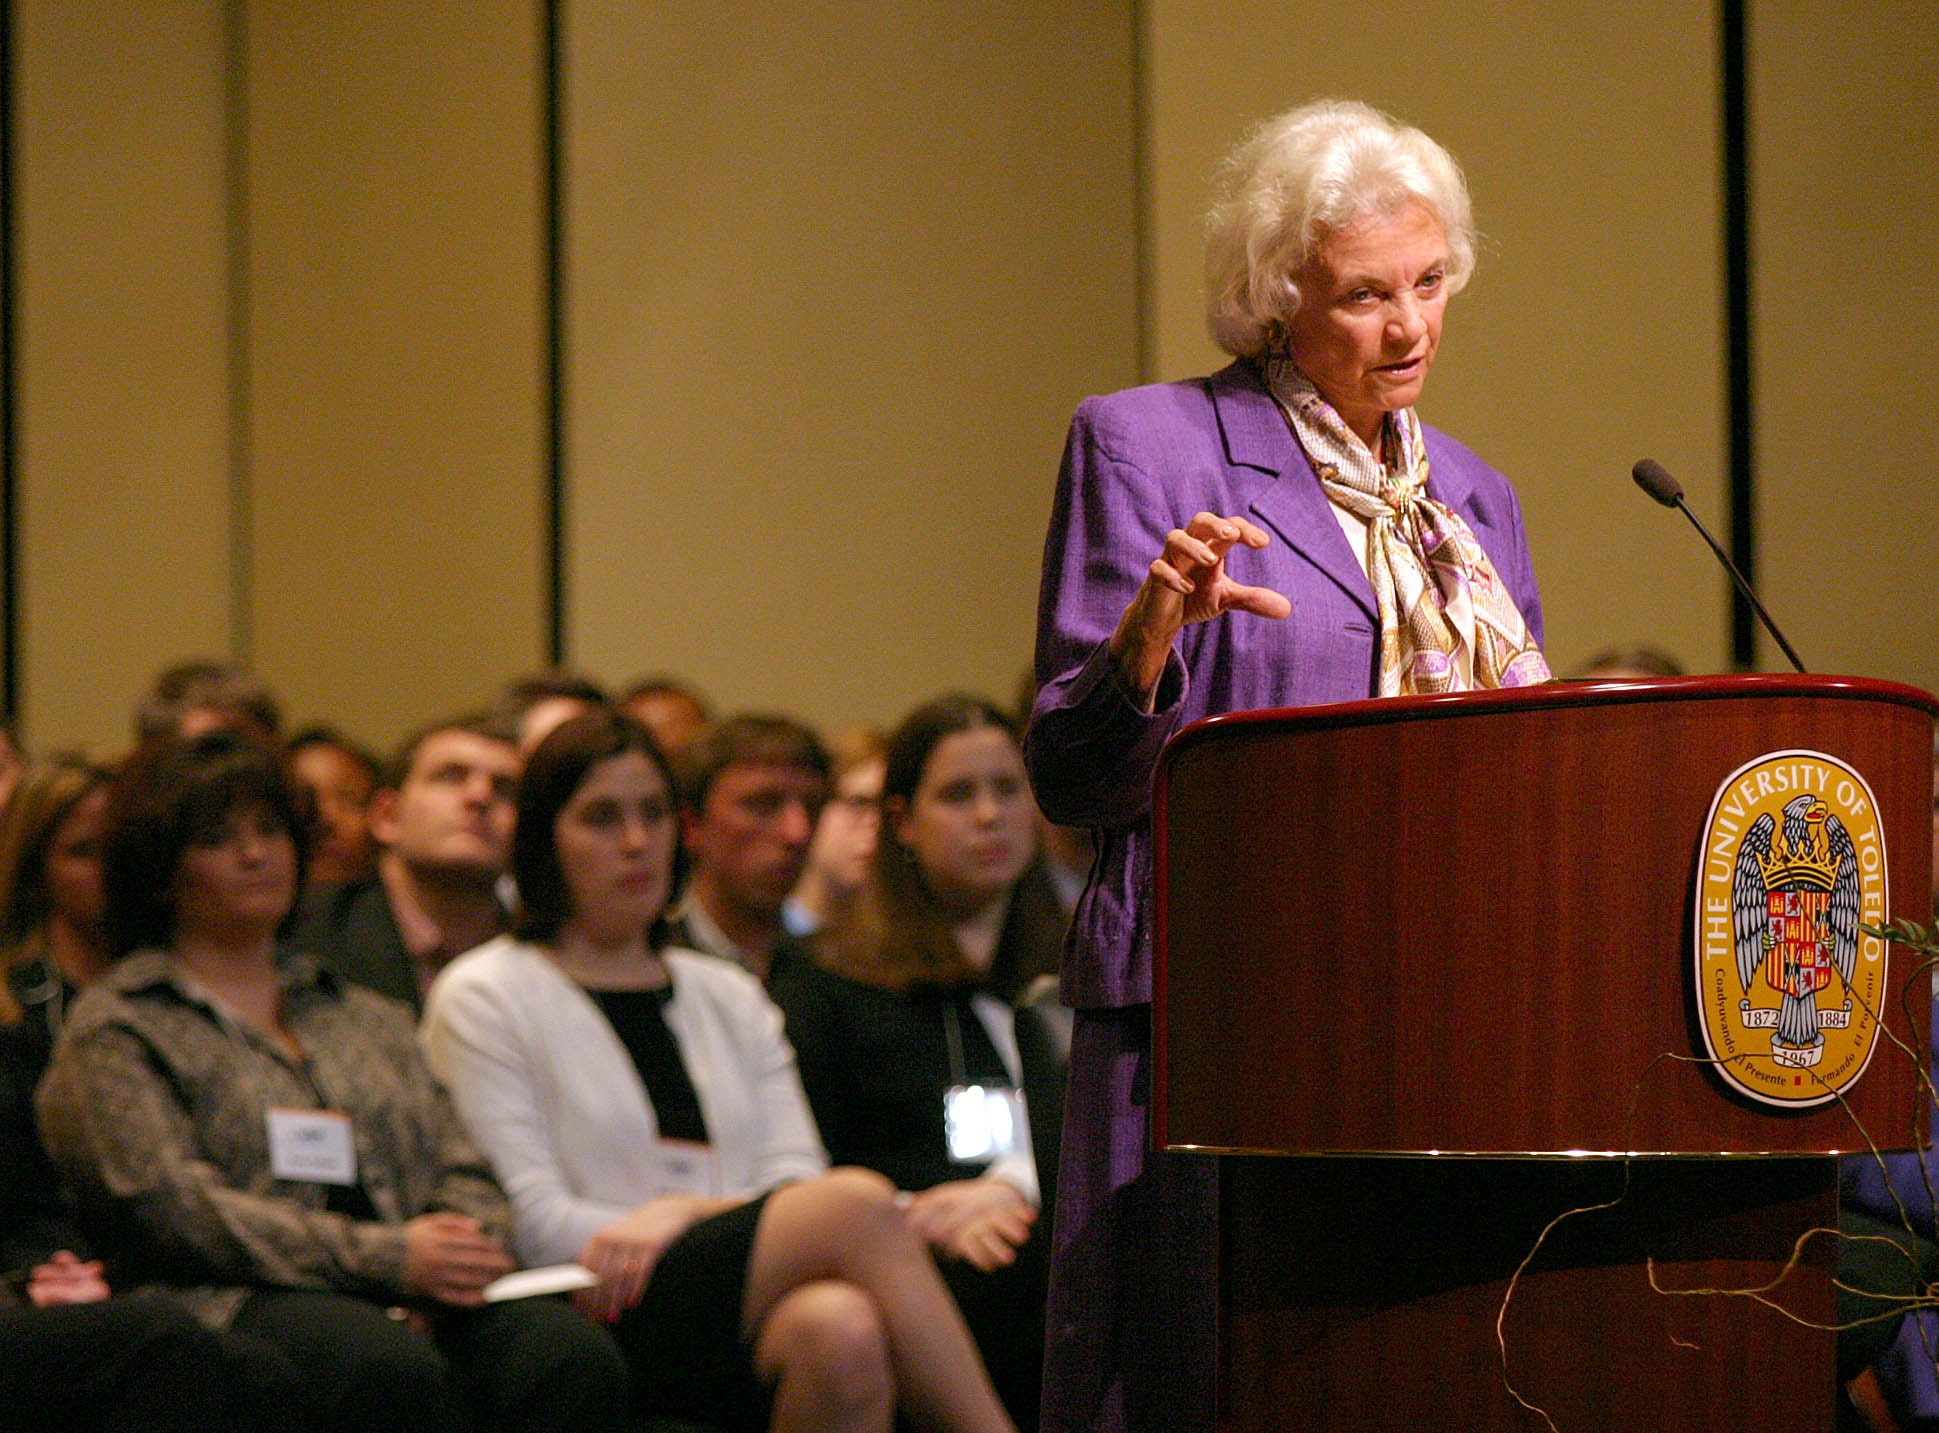 United States Supreme Court Justice Sandra Day O'Connor gestures as she speaks to the public in the Doermann Theatre at the University of Toledo, Wednesday, April 7, 2004, in Toledo, Ohio. Justice O'Connor's appearance was part of the UT College  of Law's Distinguished Lecture Series.